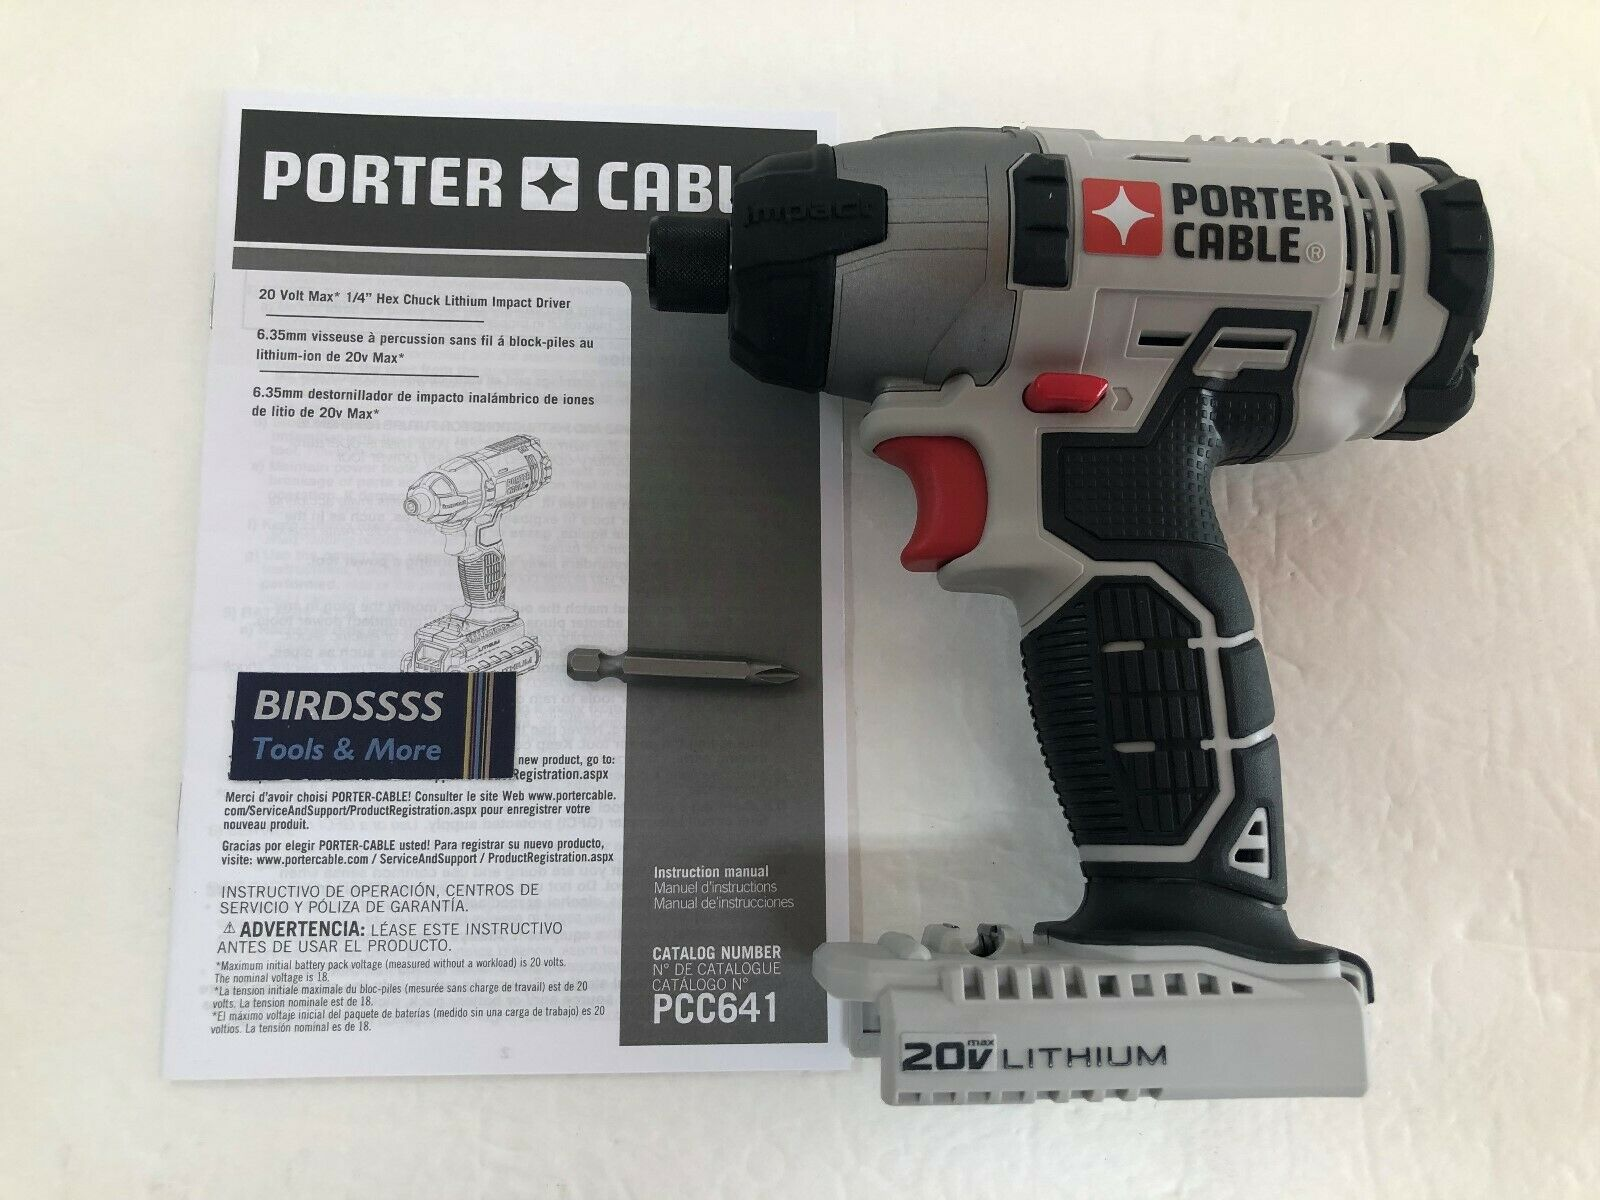 Porter Cable Pcc641 20v Max Lithium Ion Impact Driver For Sale Online Ebay